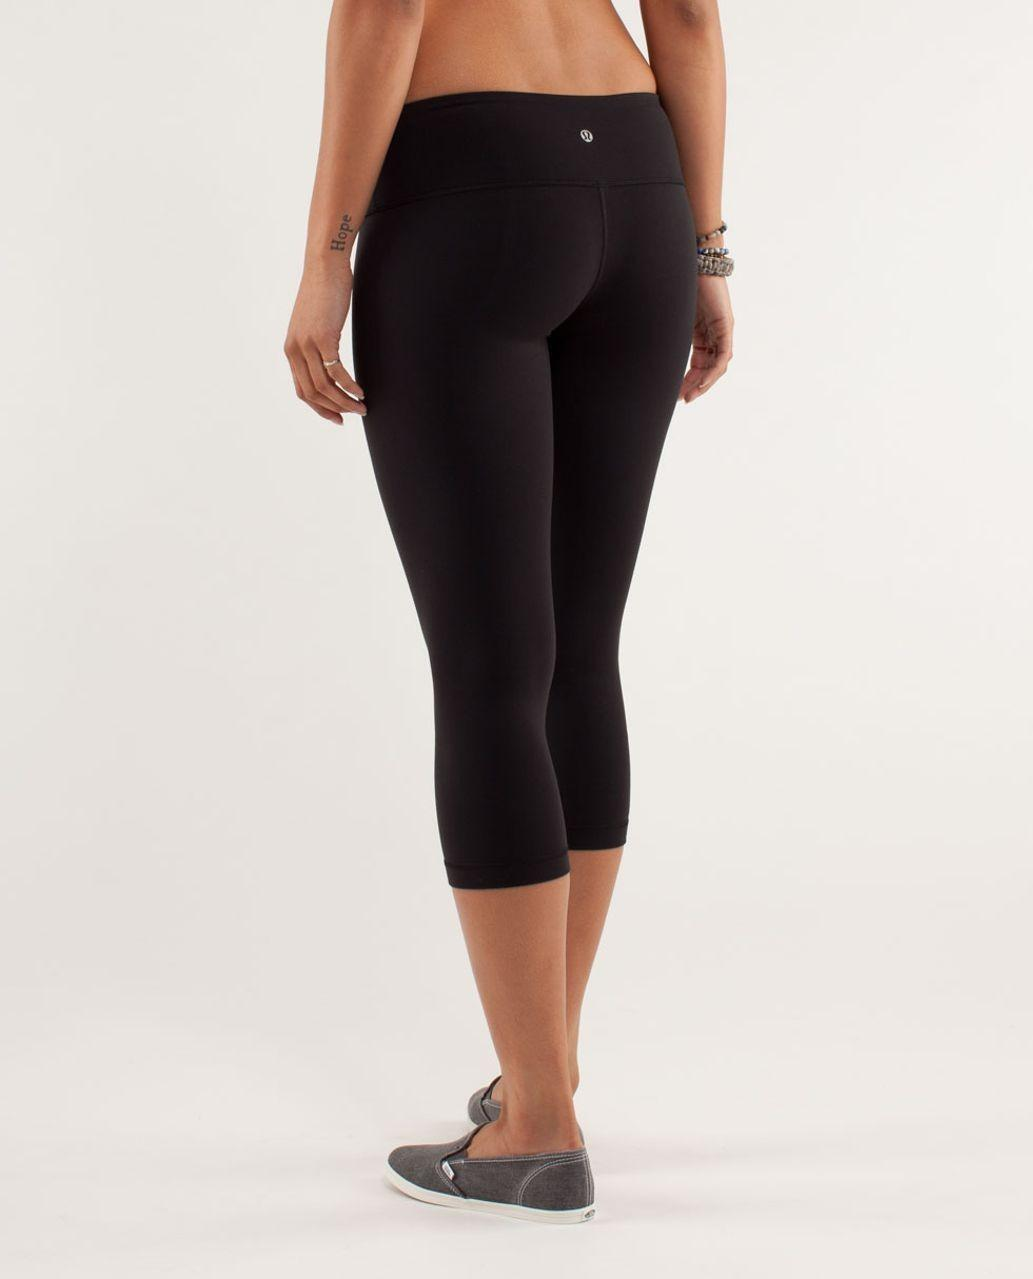 Lululemon Black Wunder Under Crop Leggings #SwapCA